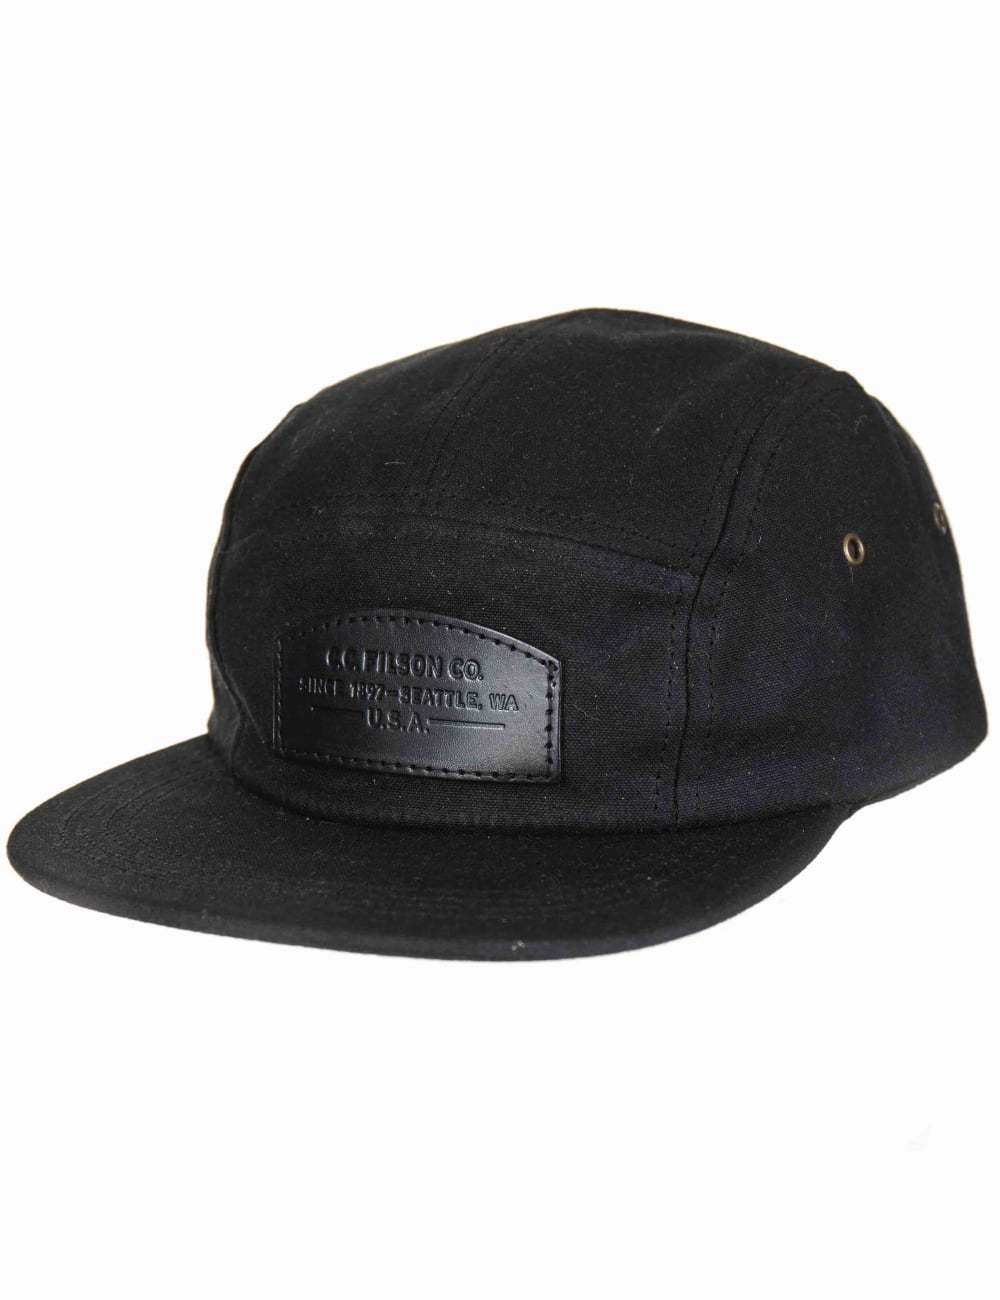 880dd18fa44 Filson Waxed Leather Patch 5 Panel Hat - Black - Hat Shop from Fat ...